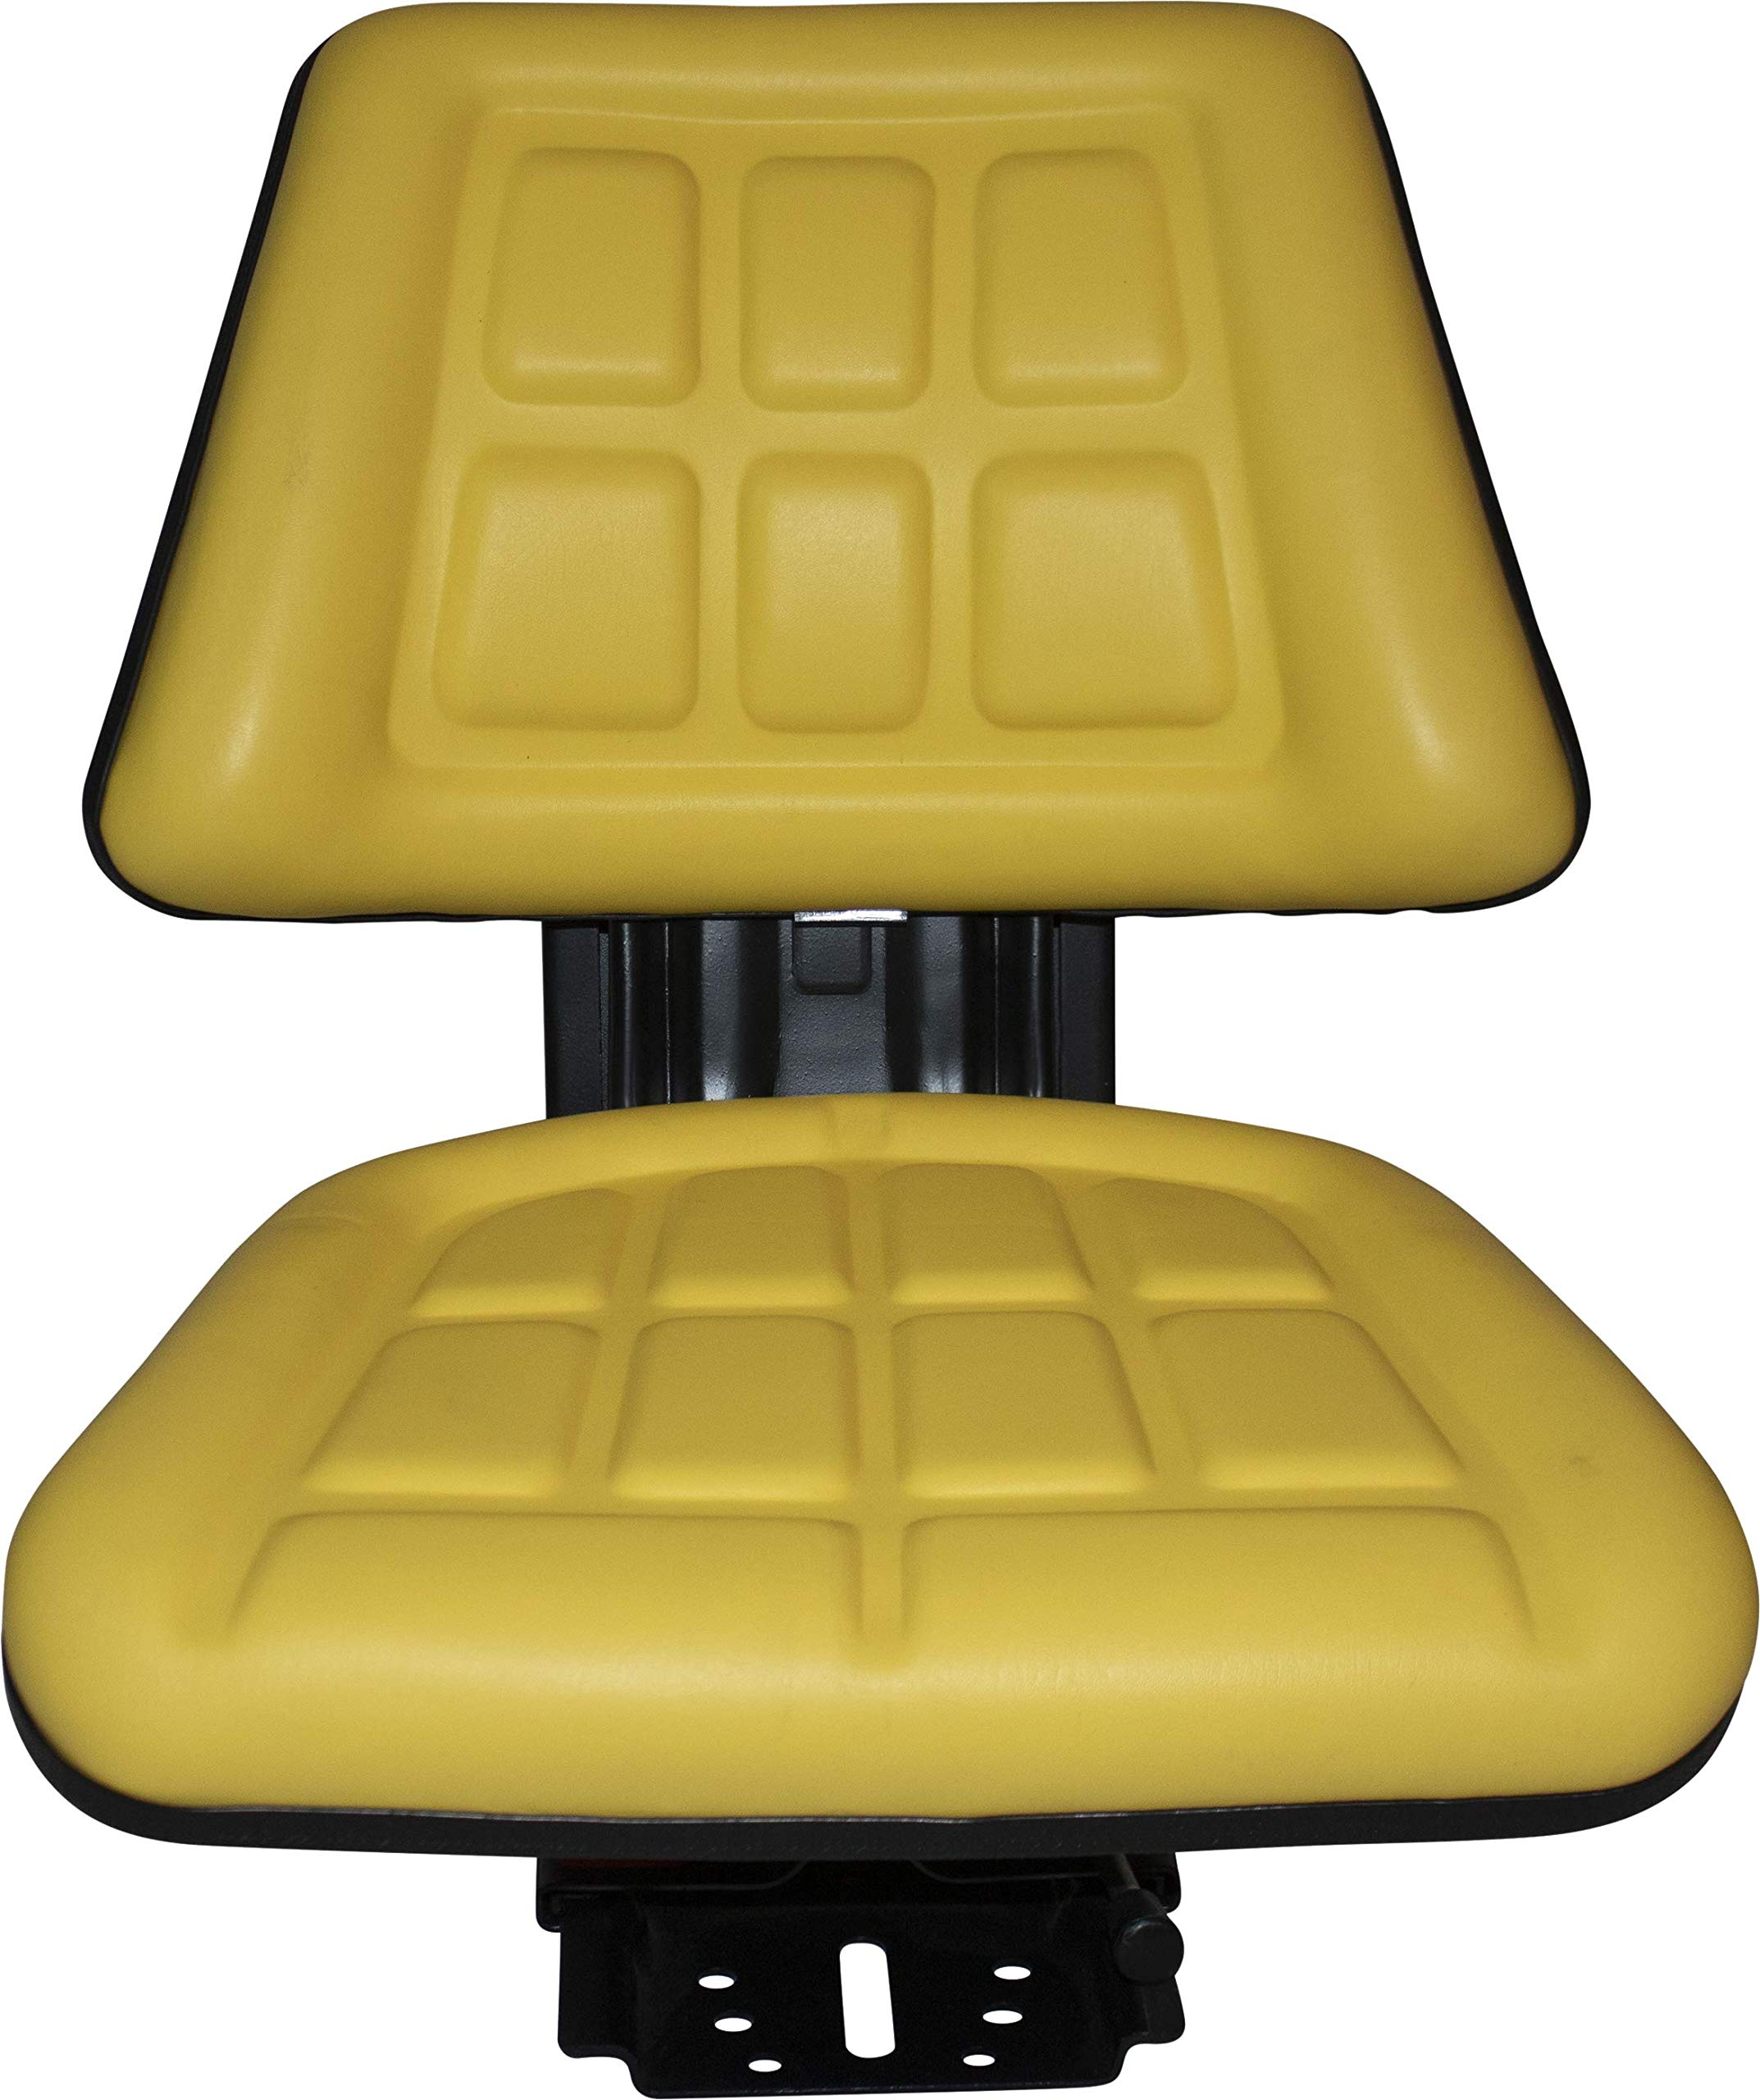 Yellow TRAC SEATS Brand TRIBACK Style Universal Tractor Suspension SEAT with TILT FITS John Deere 5200 5210 5300 5310 (Fast Shipping - 1-4 Business Days DELIVERY - Same OR Next Day Shipping -View MAP by TRAC SEATS